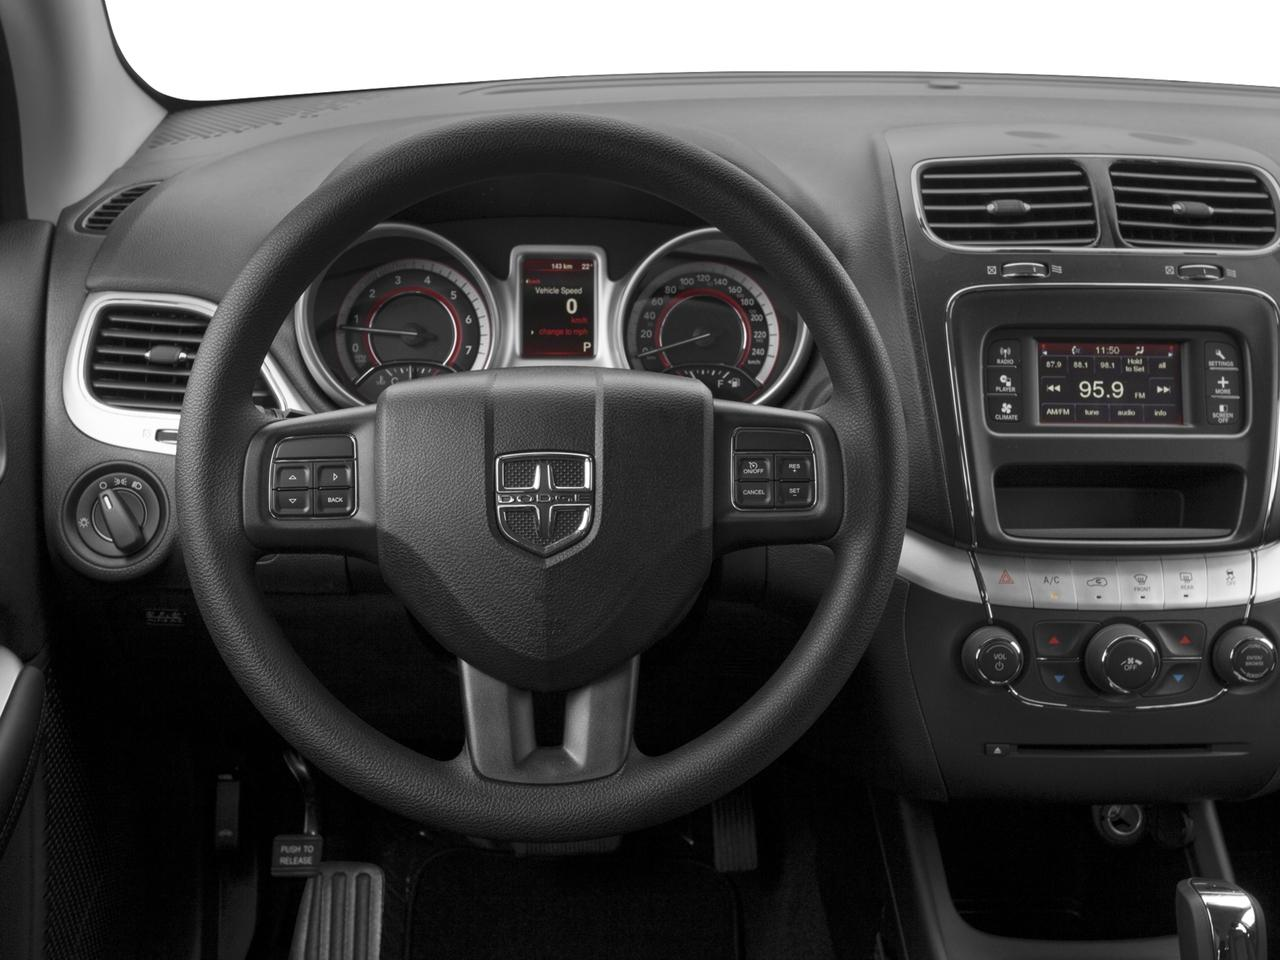 2015 Dodge Journey Vehicle Photo in COLORADO SPRINGS, CO 80905-7347